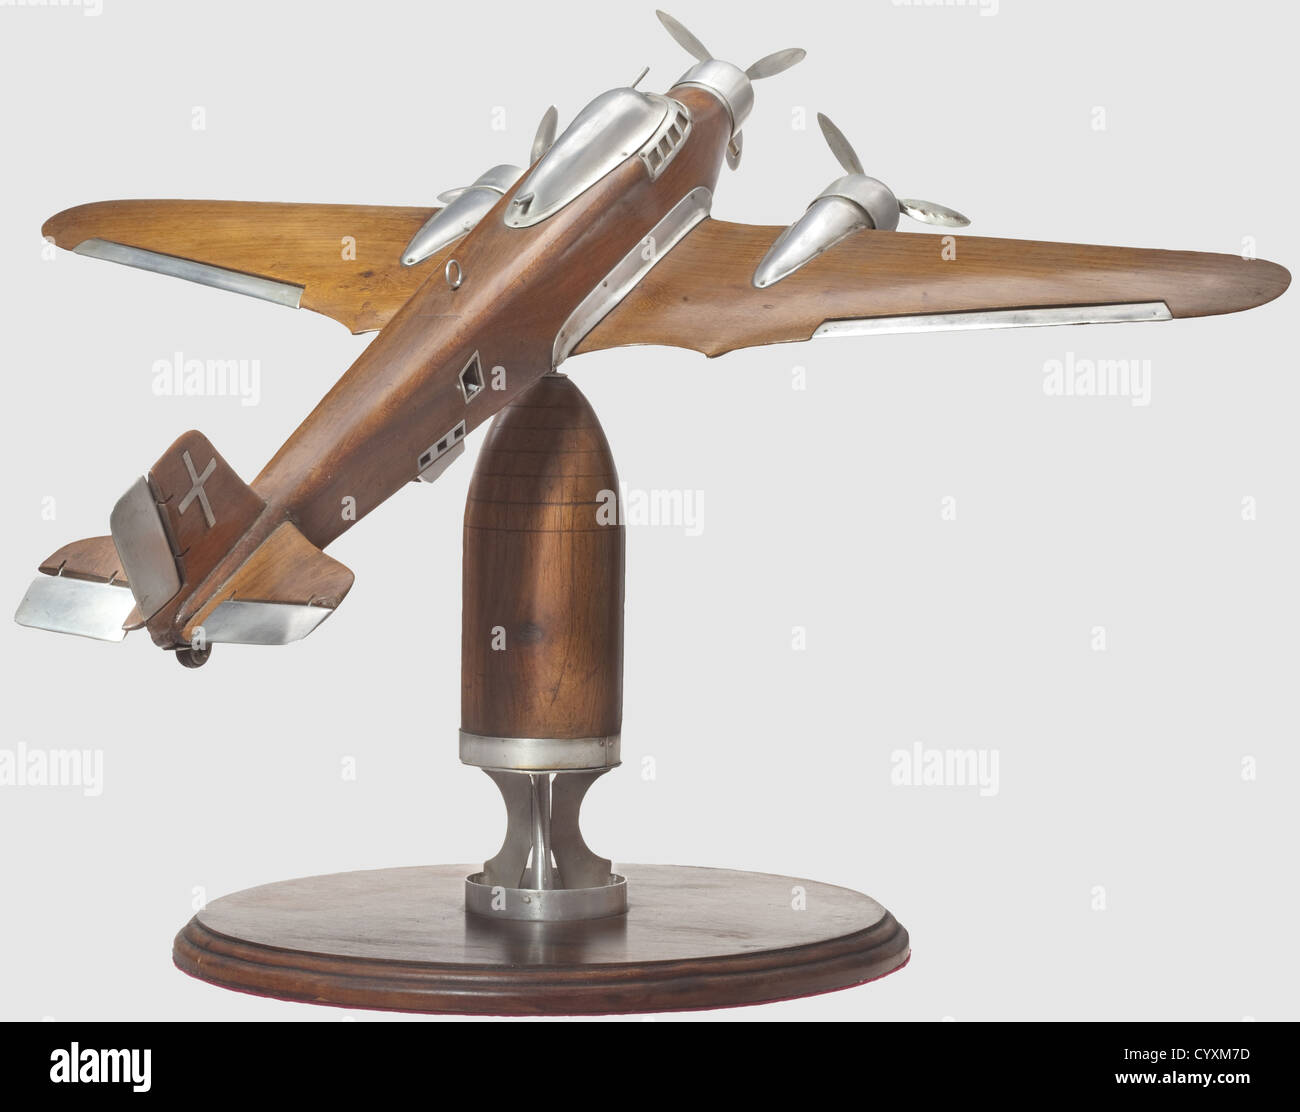 Savoia-Marchetti S.M. 79-II 'Sparviero' (Sparrow Hawk), Second World War A fine and detailed African hardwood - Stock Image